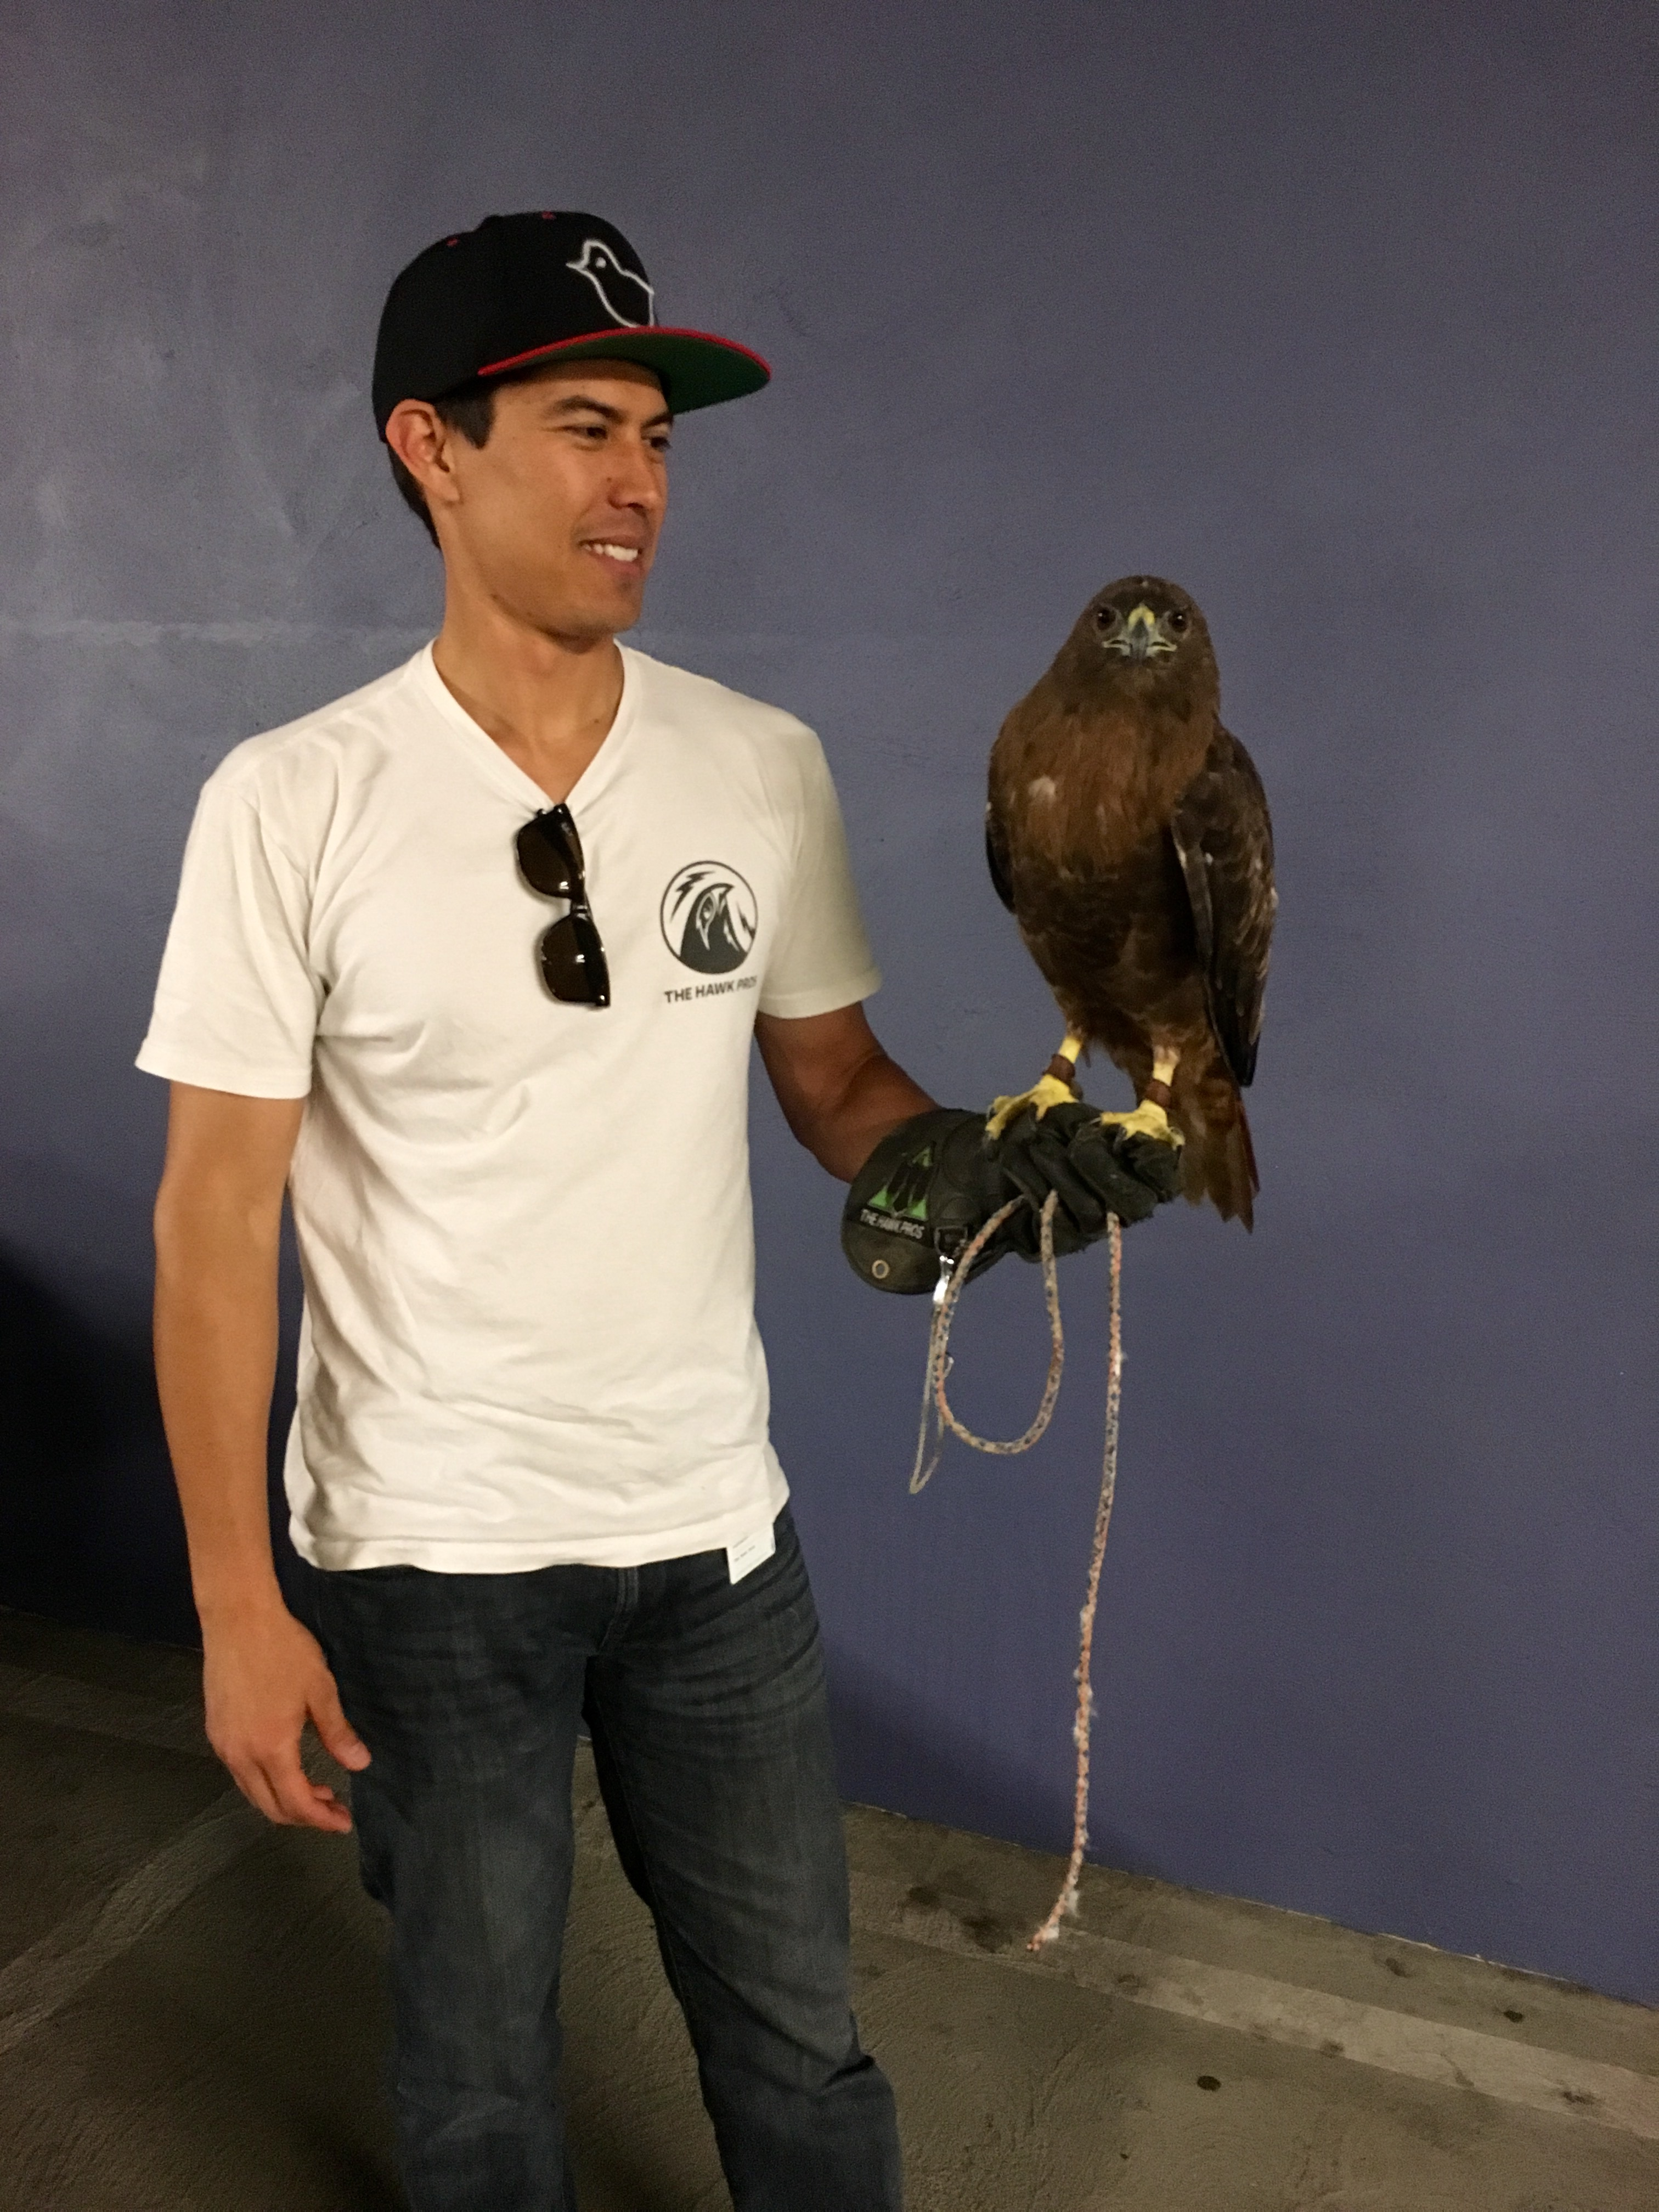 The Art of Falconry | Unframed